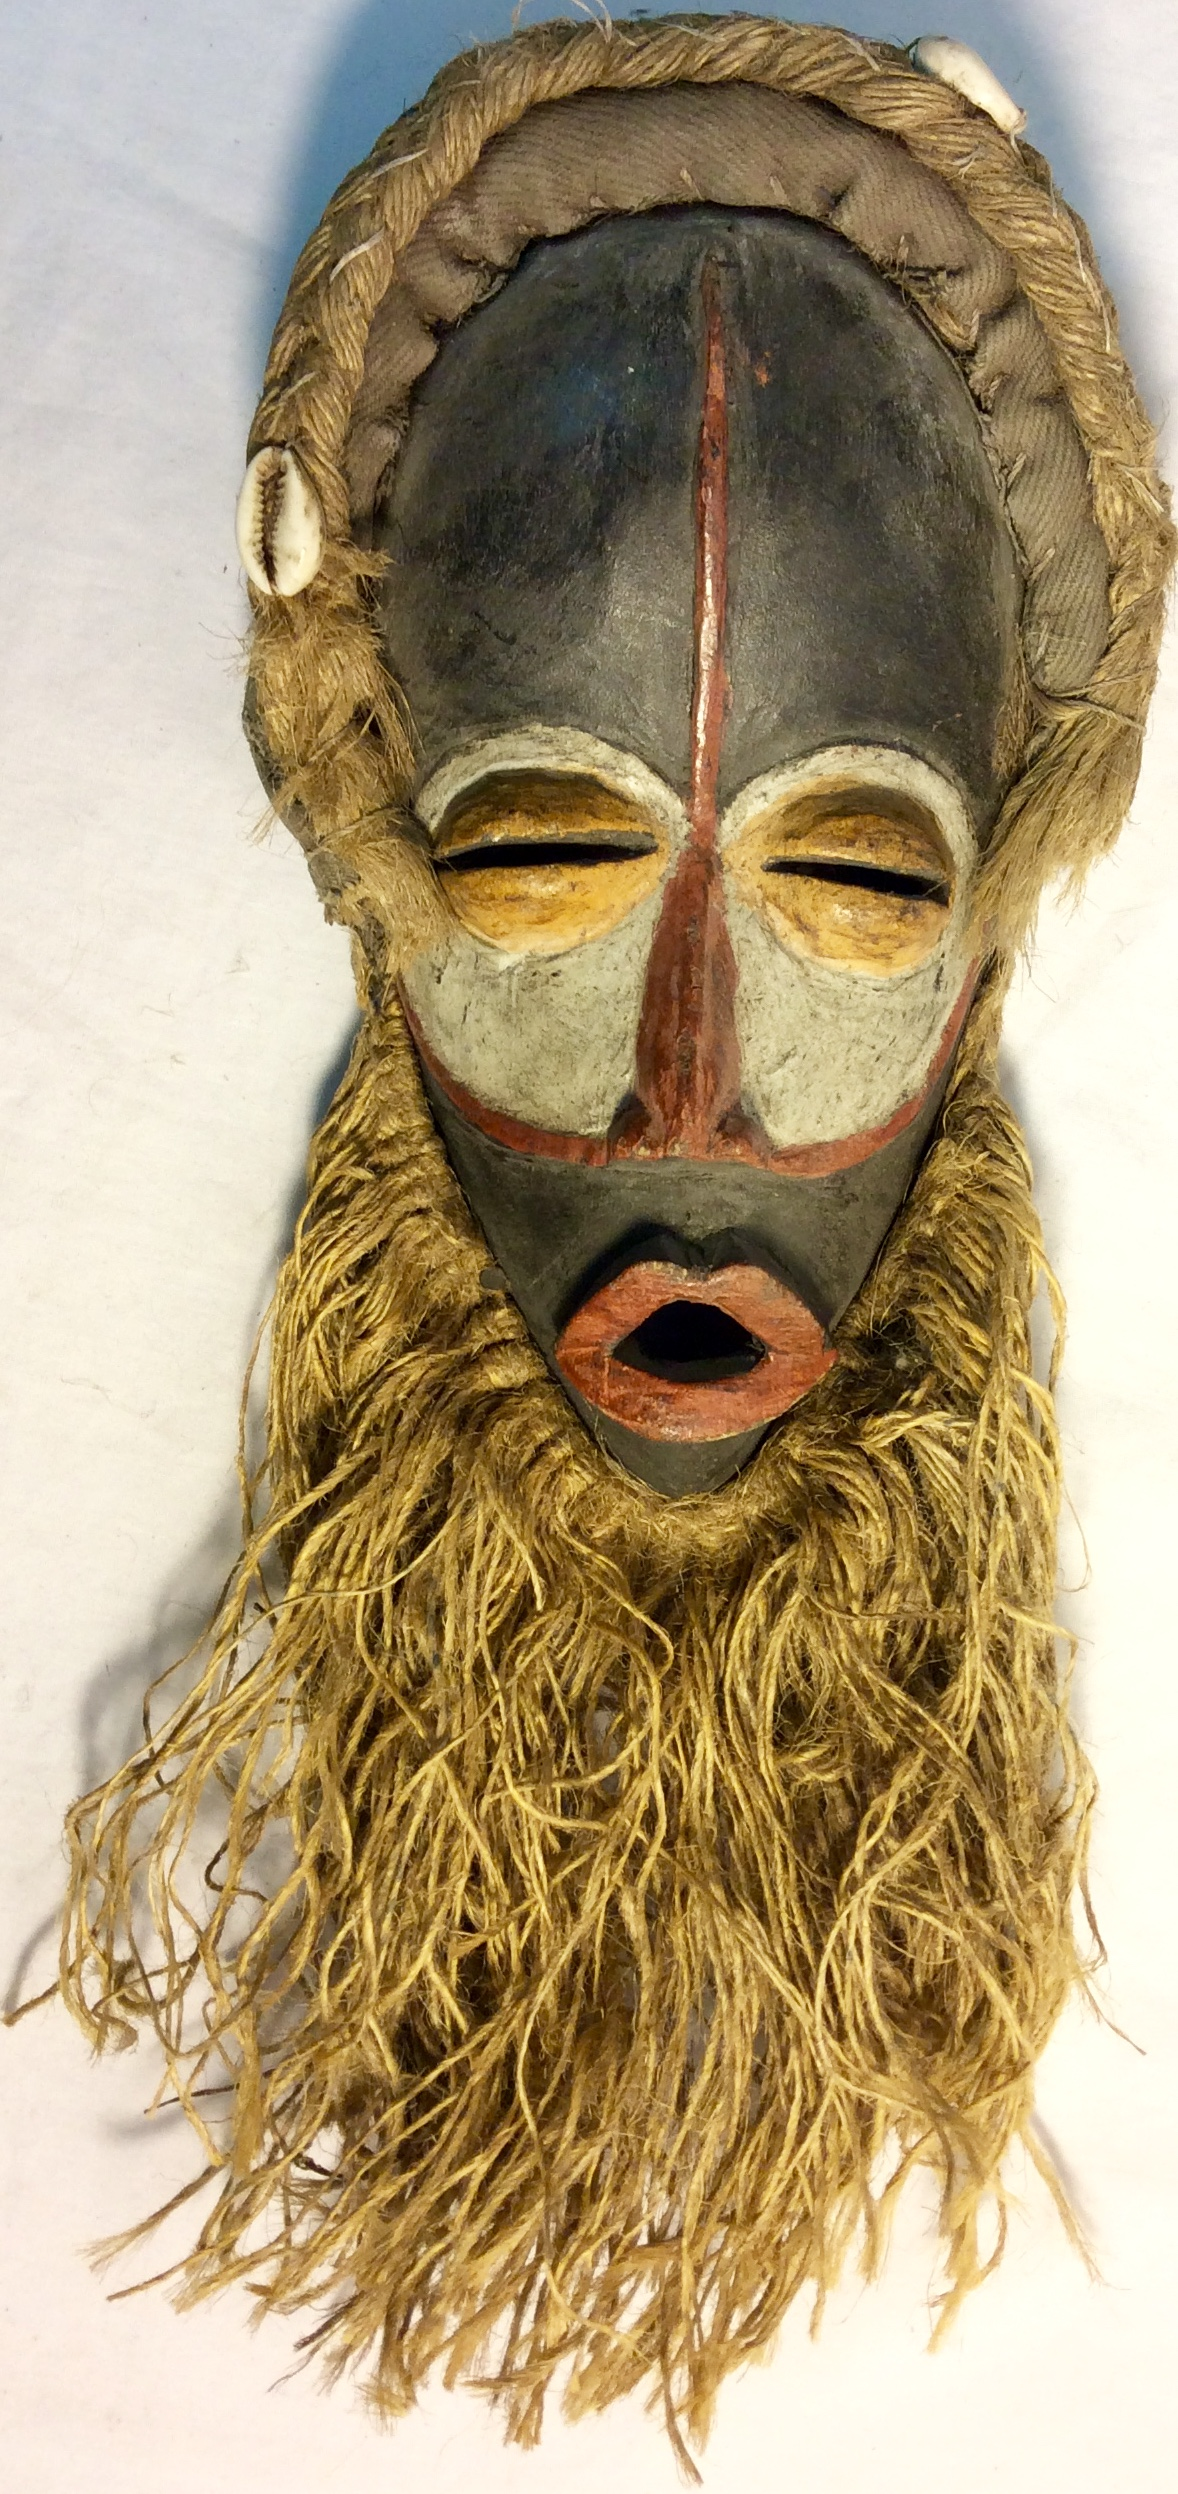 Tradicional african mask. Wood and raffia